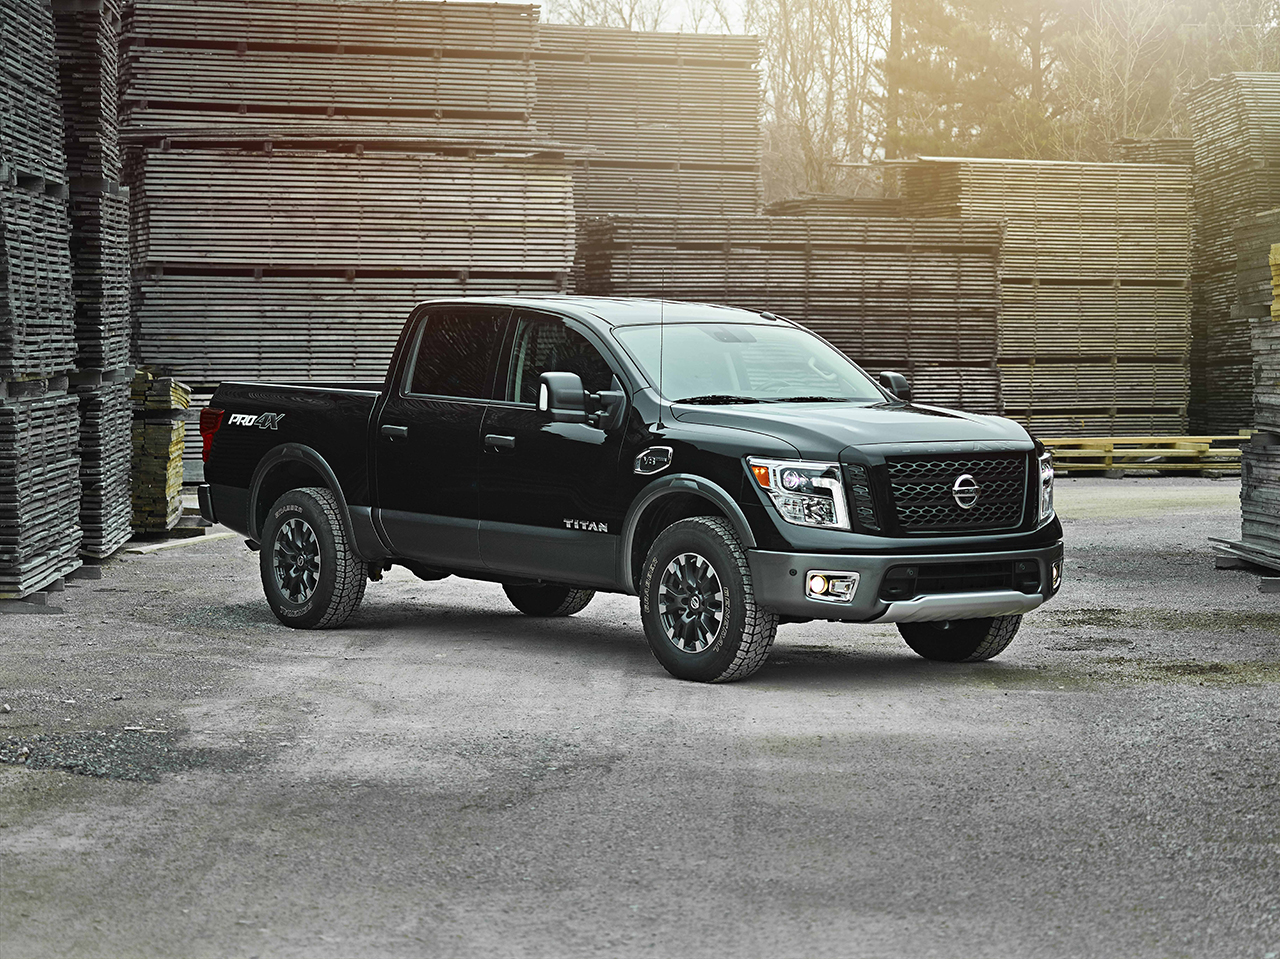 2017 nissan titan king cab egmcartech. Black Bedroom Furniture Sets. Home Design Ideas